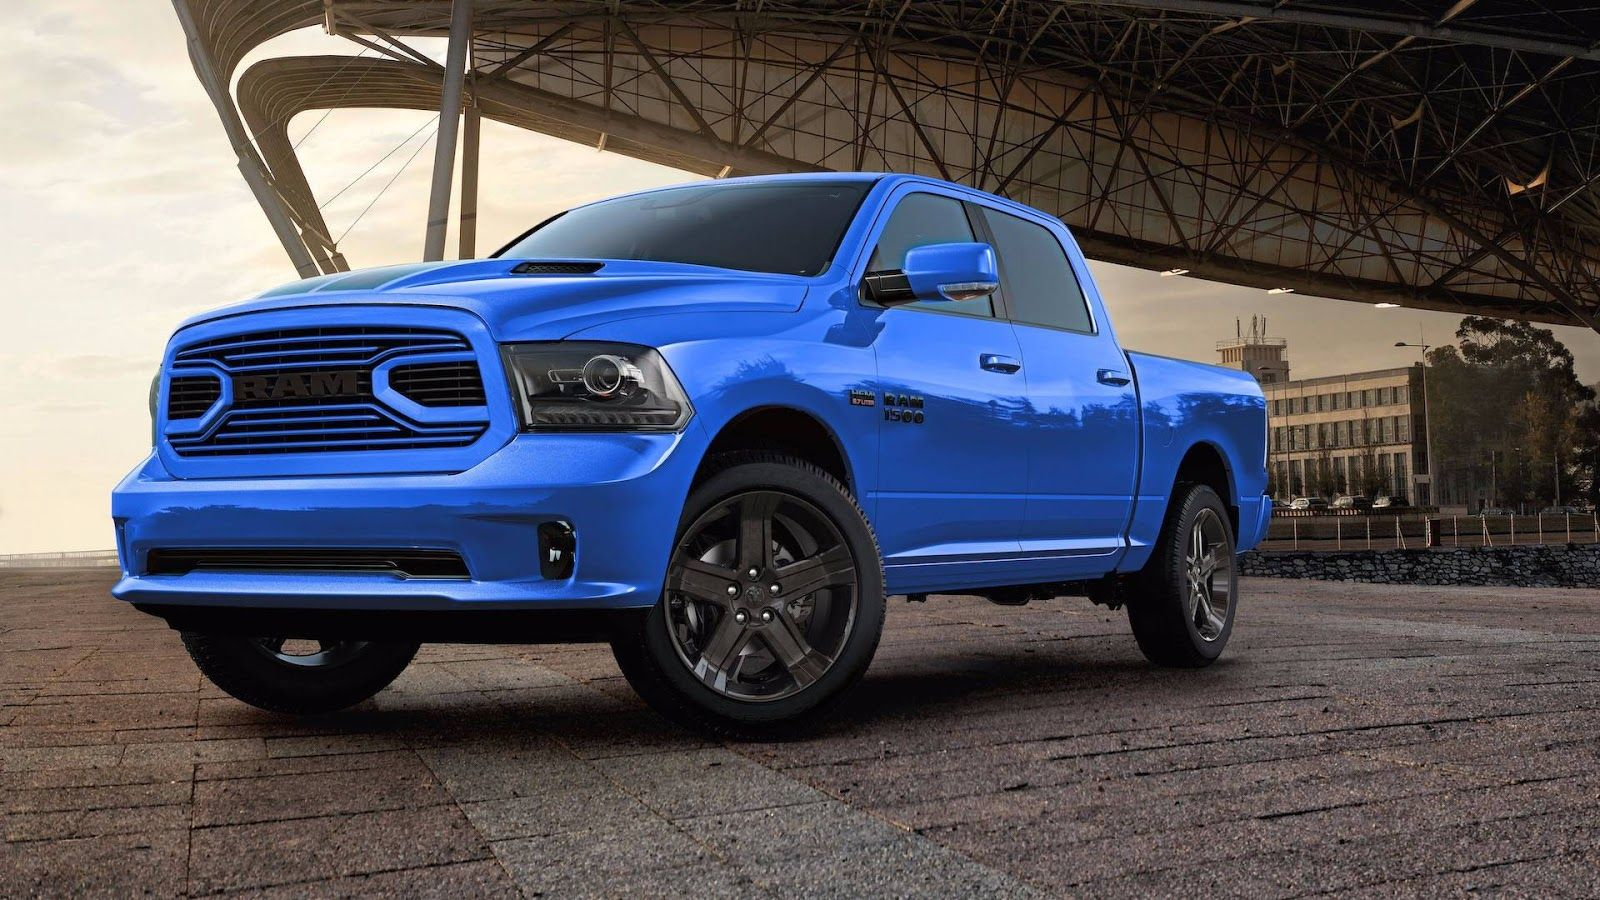 2018 Ram 1500 Hydro Blue Sport Edition Gets A Racy French Kiss